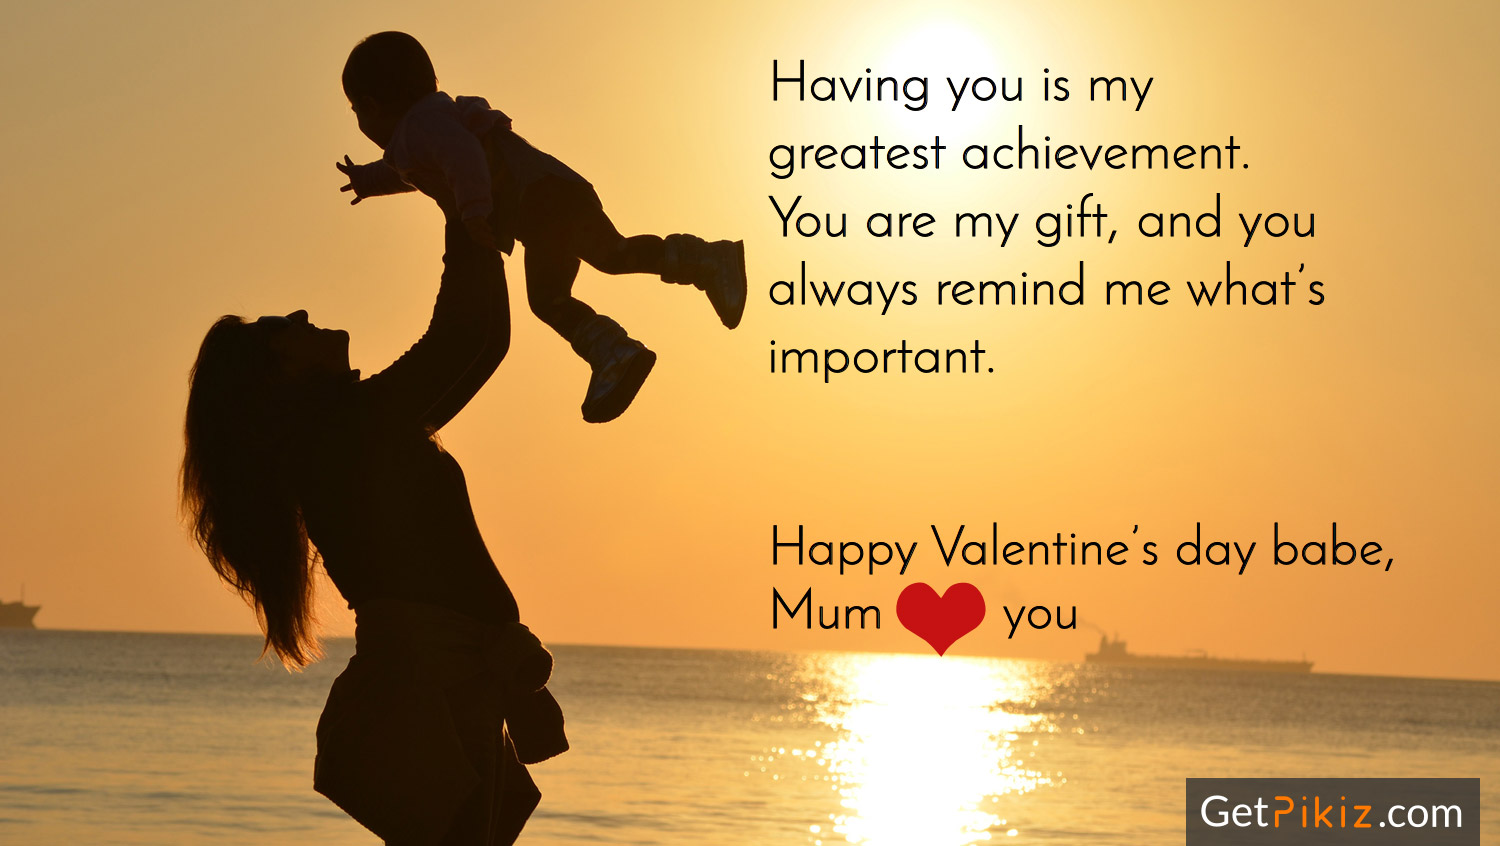 Having you is my greatest achievement. You are my gift, and you always remind me what's important. Happy Valentine's day babe, Mum love you.